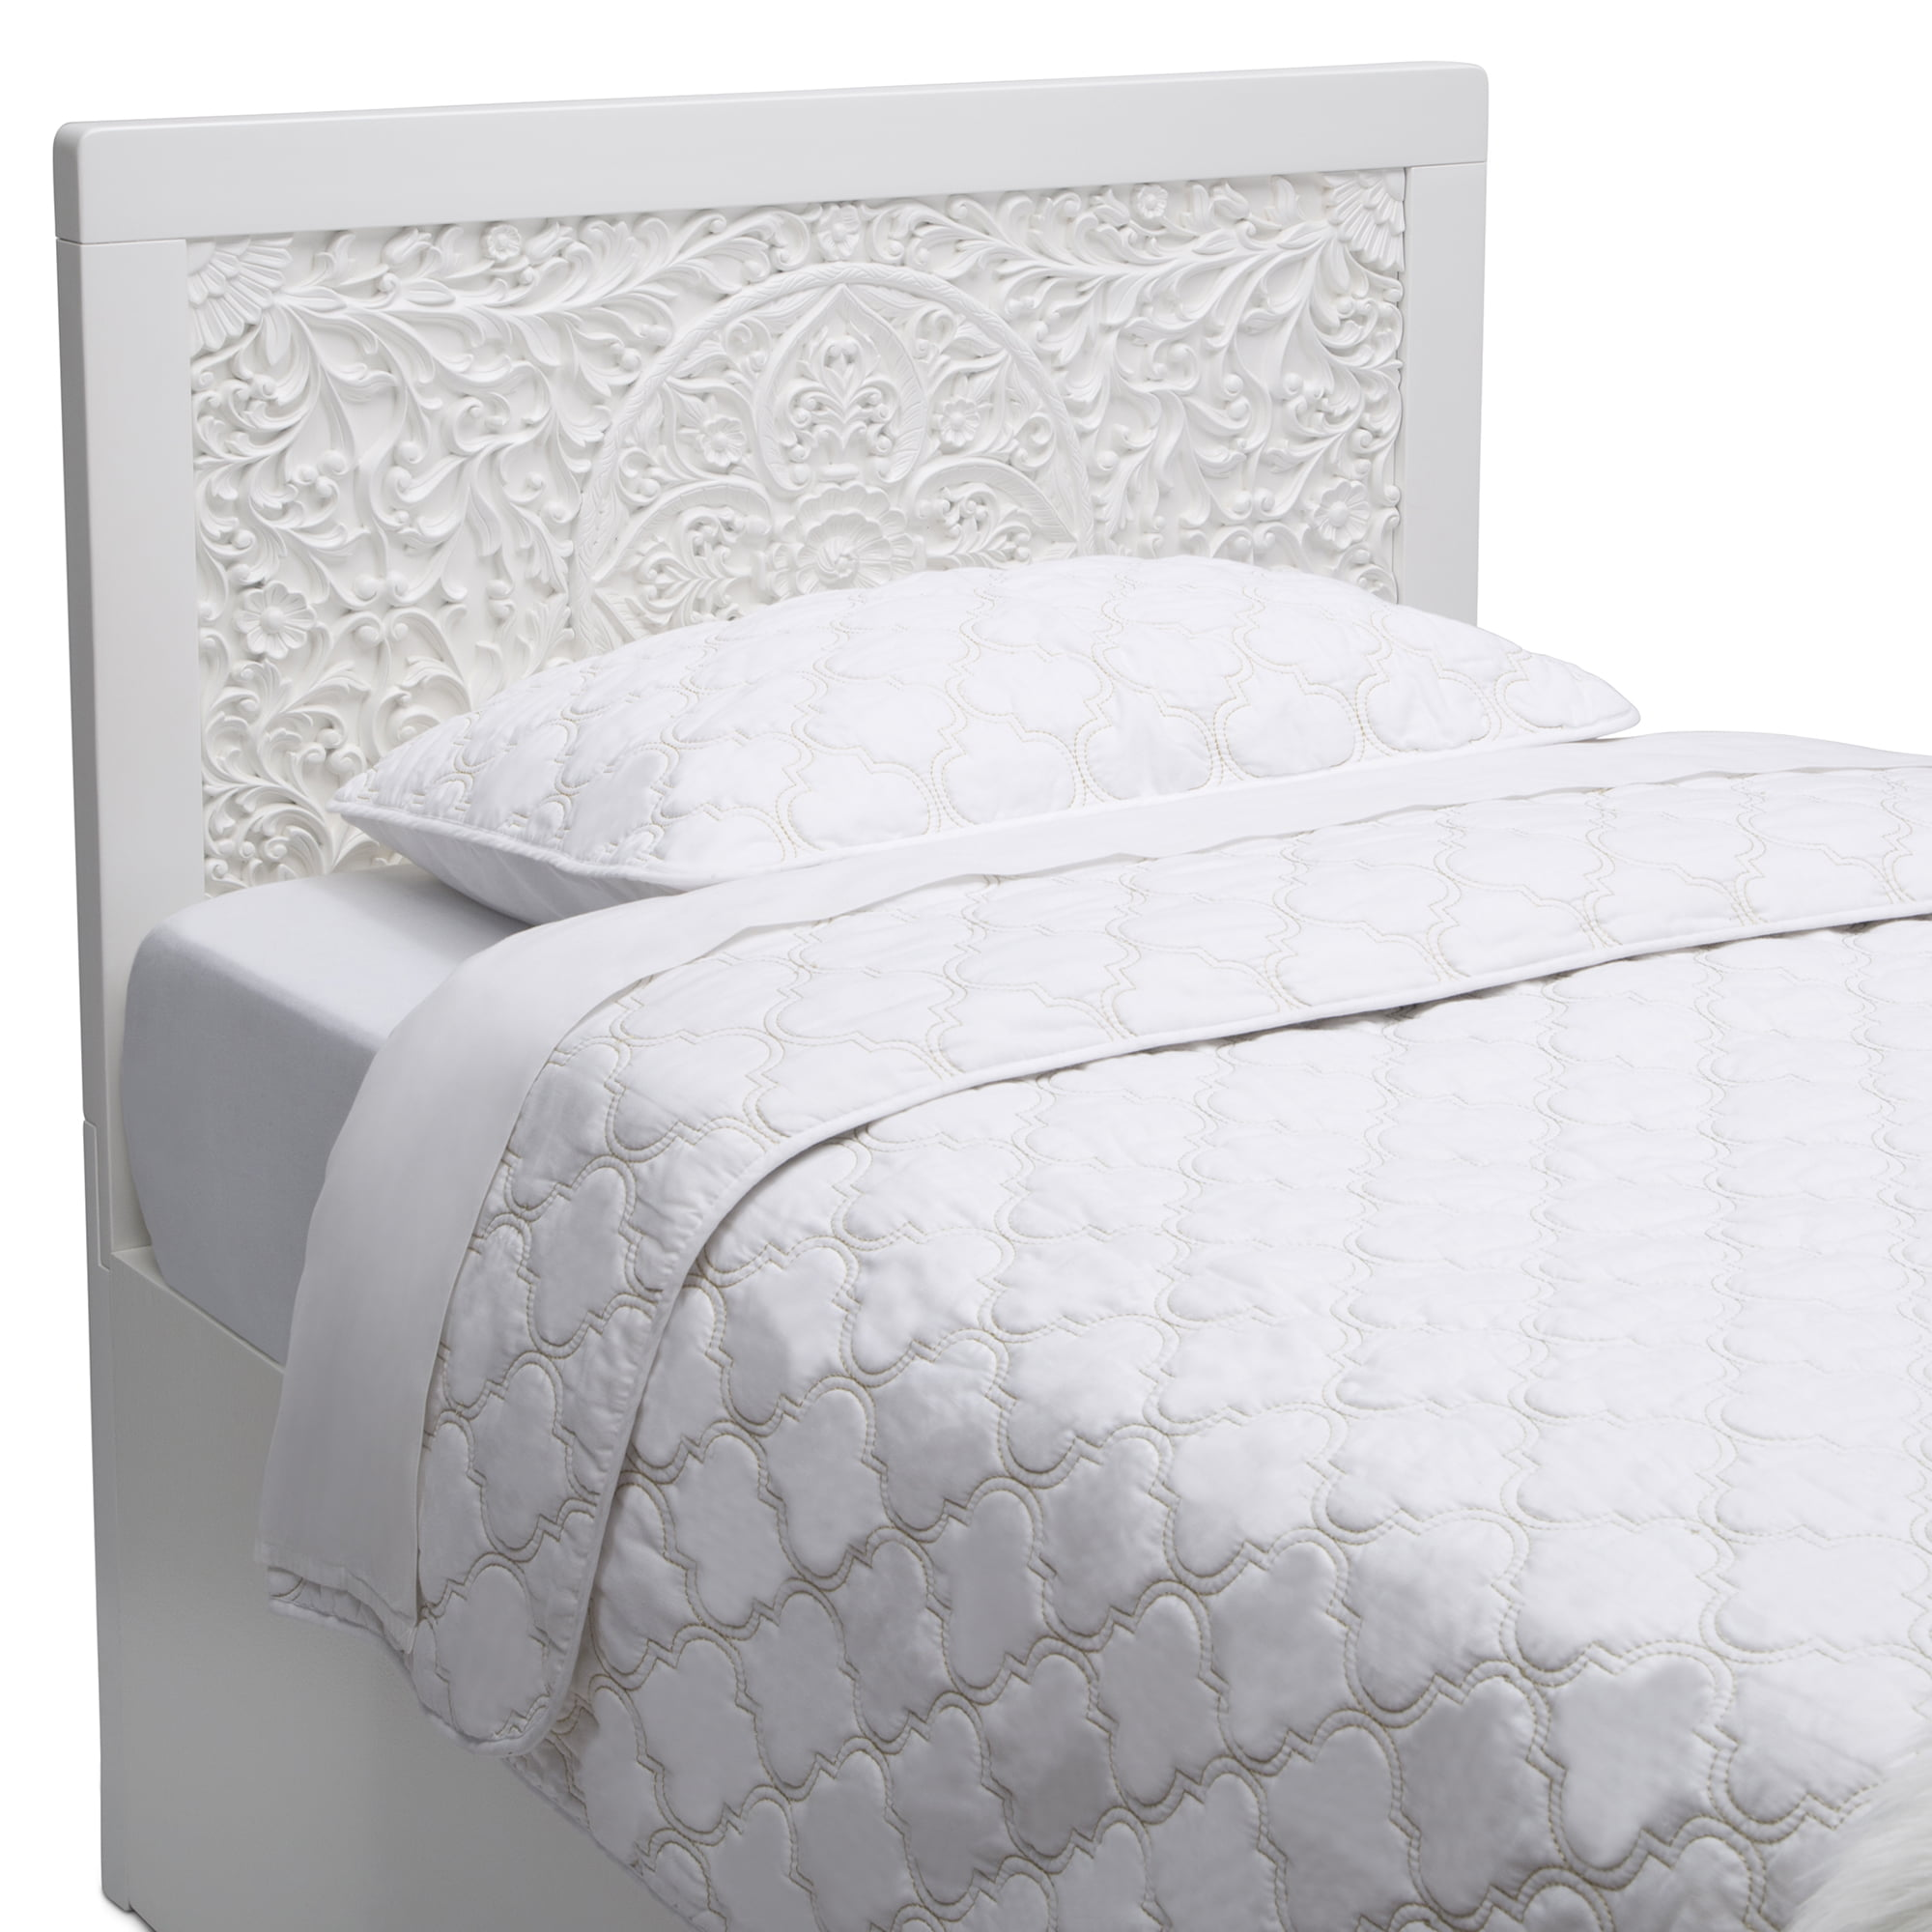 Better Homes & Gardens Marissa Twin Headboard - Bianca White - Walmart.com